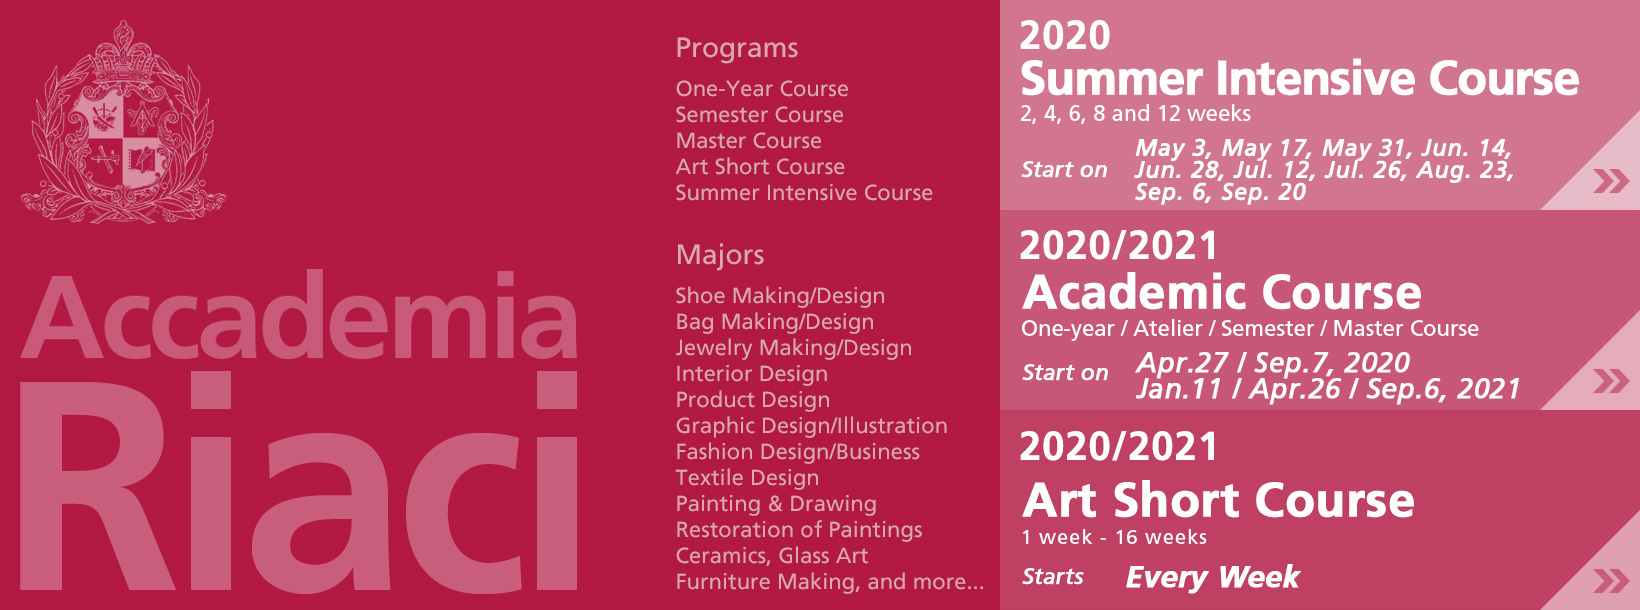 adacemic course, art short course, shoe making/design, bag making/design, jewelry making/design, interior design, product design, graphic design/illustration, fashion design, textile design, painting and drawing, restoration of paintings, ceramics, grass art, furniture making, and more